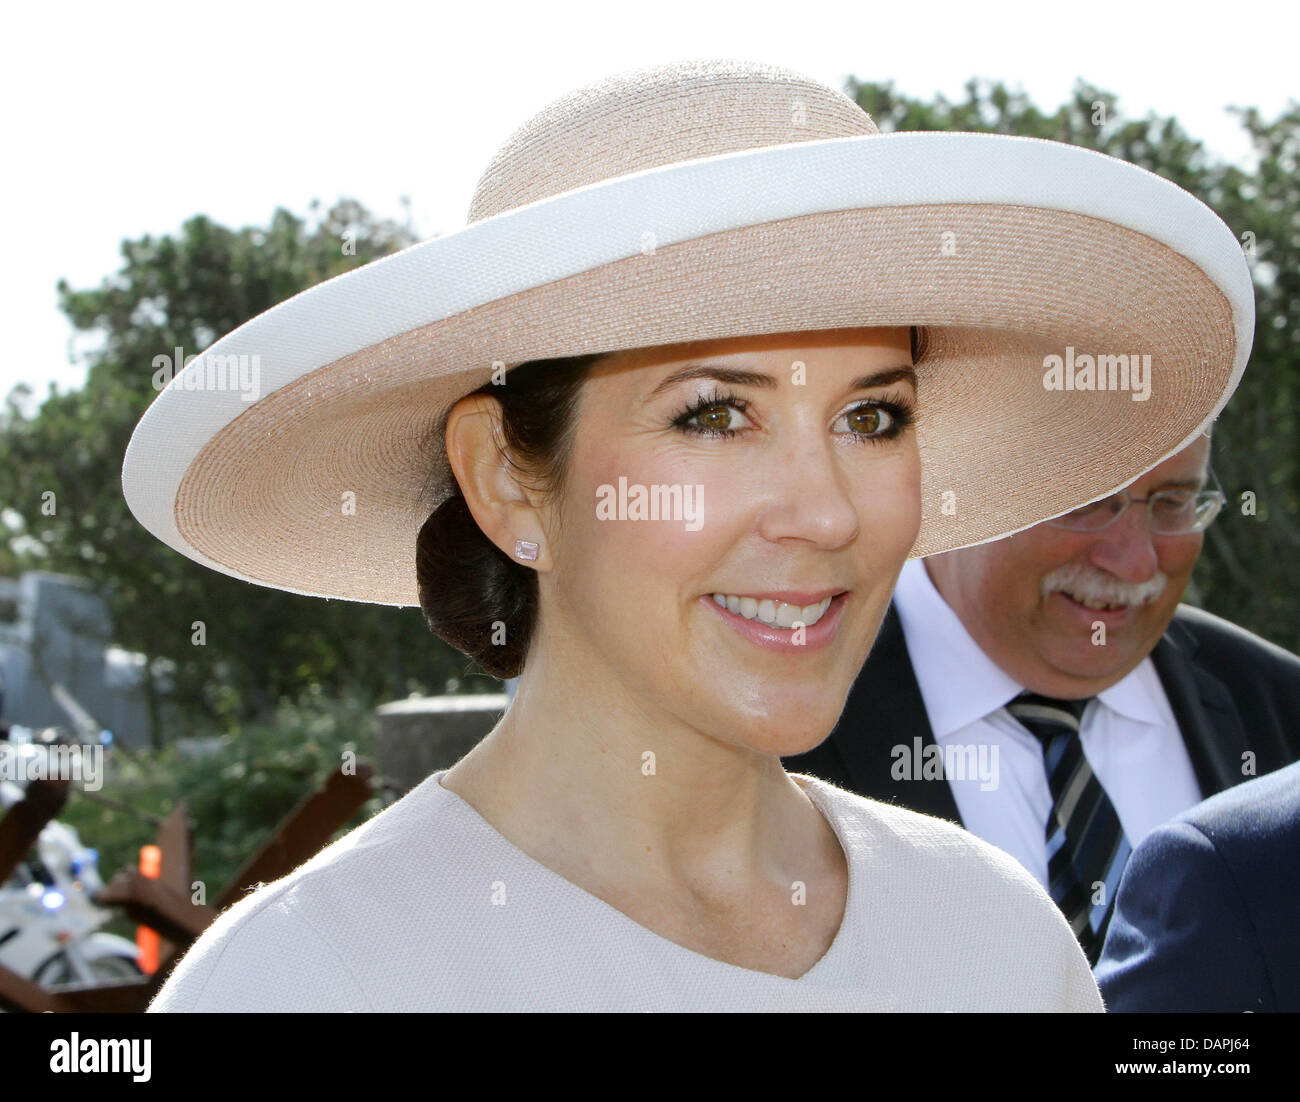 Danish Crown Princess Mary arrives in Hanstholm, Denmark, 23 August 2011, during their summer tour with the royal - Stock Image